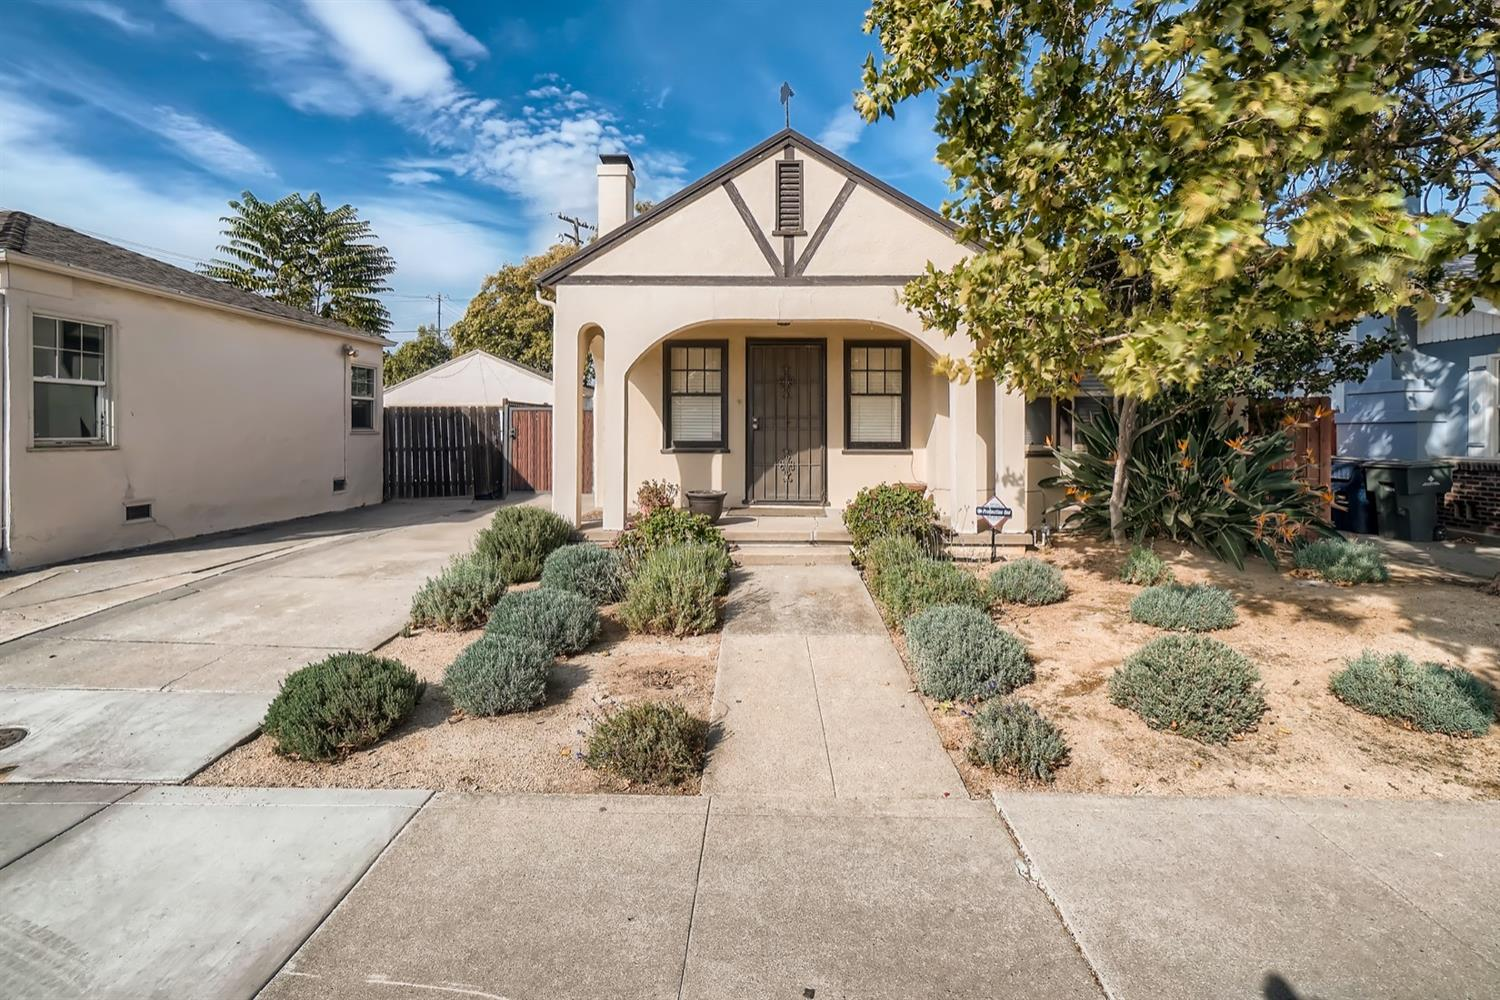 Nestled in the desirable Med Center enclave, this 2 bedroom, 1 bathroom cottage welcomes you home!